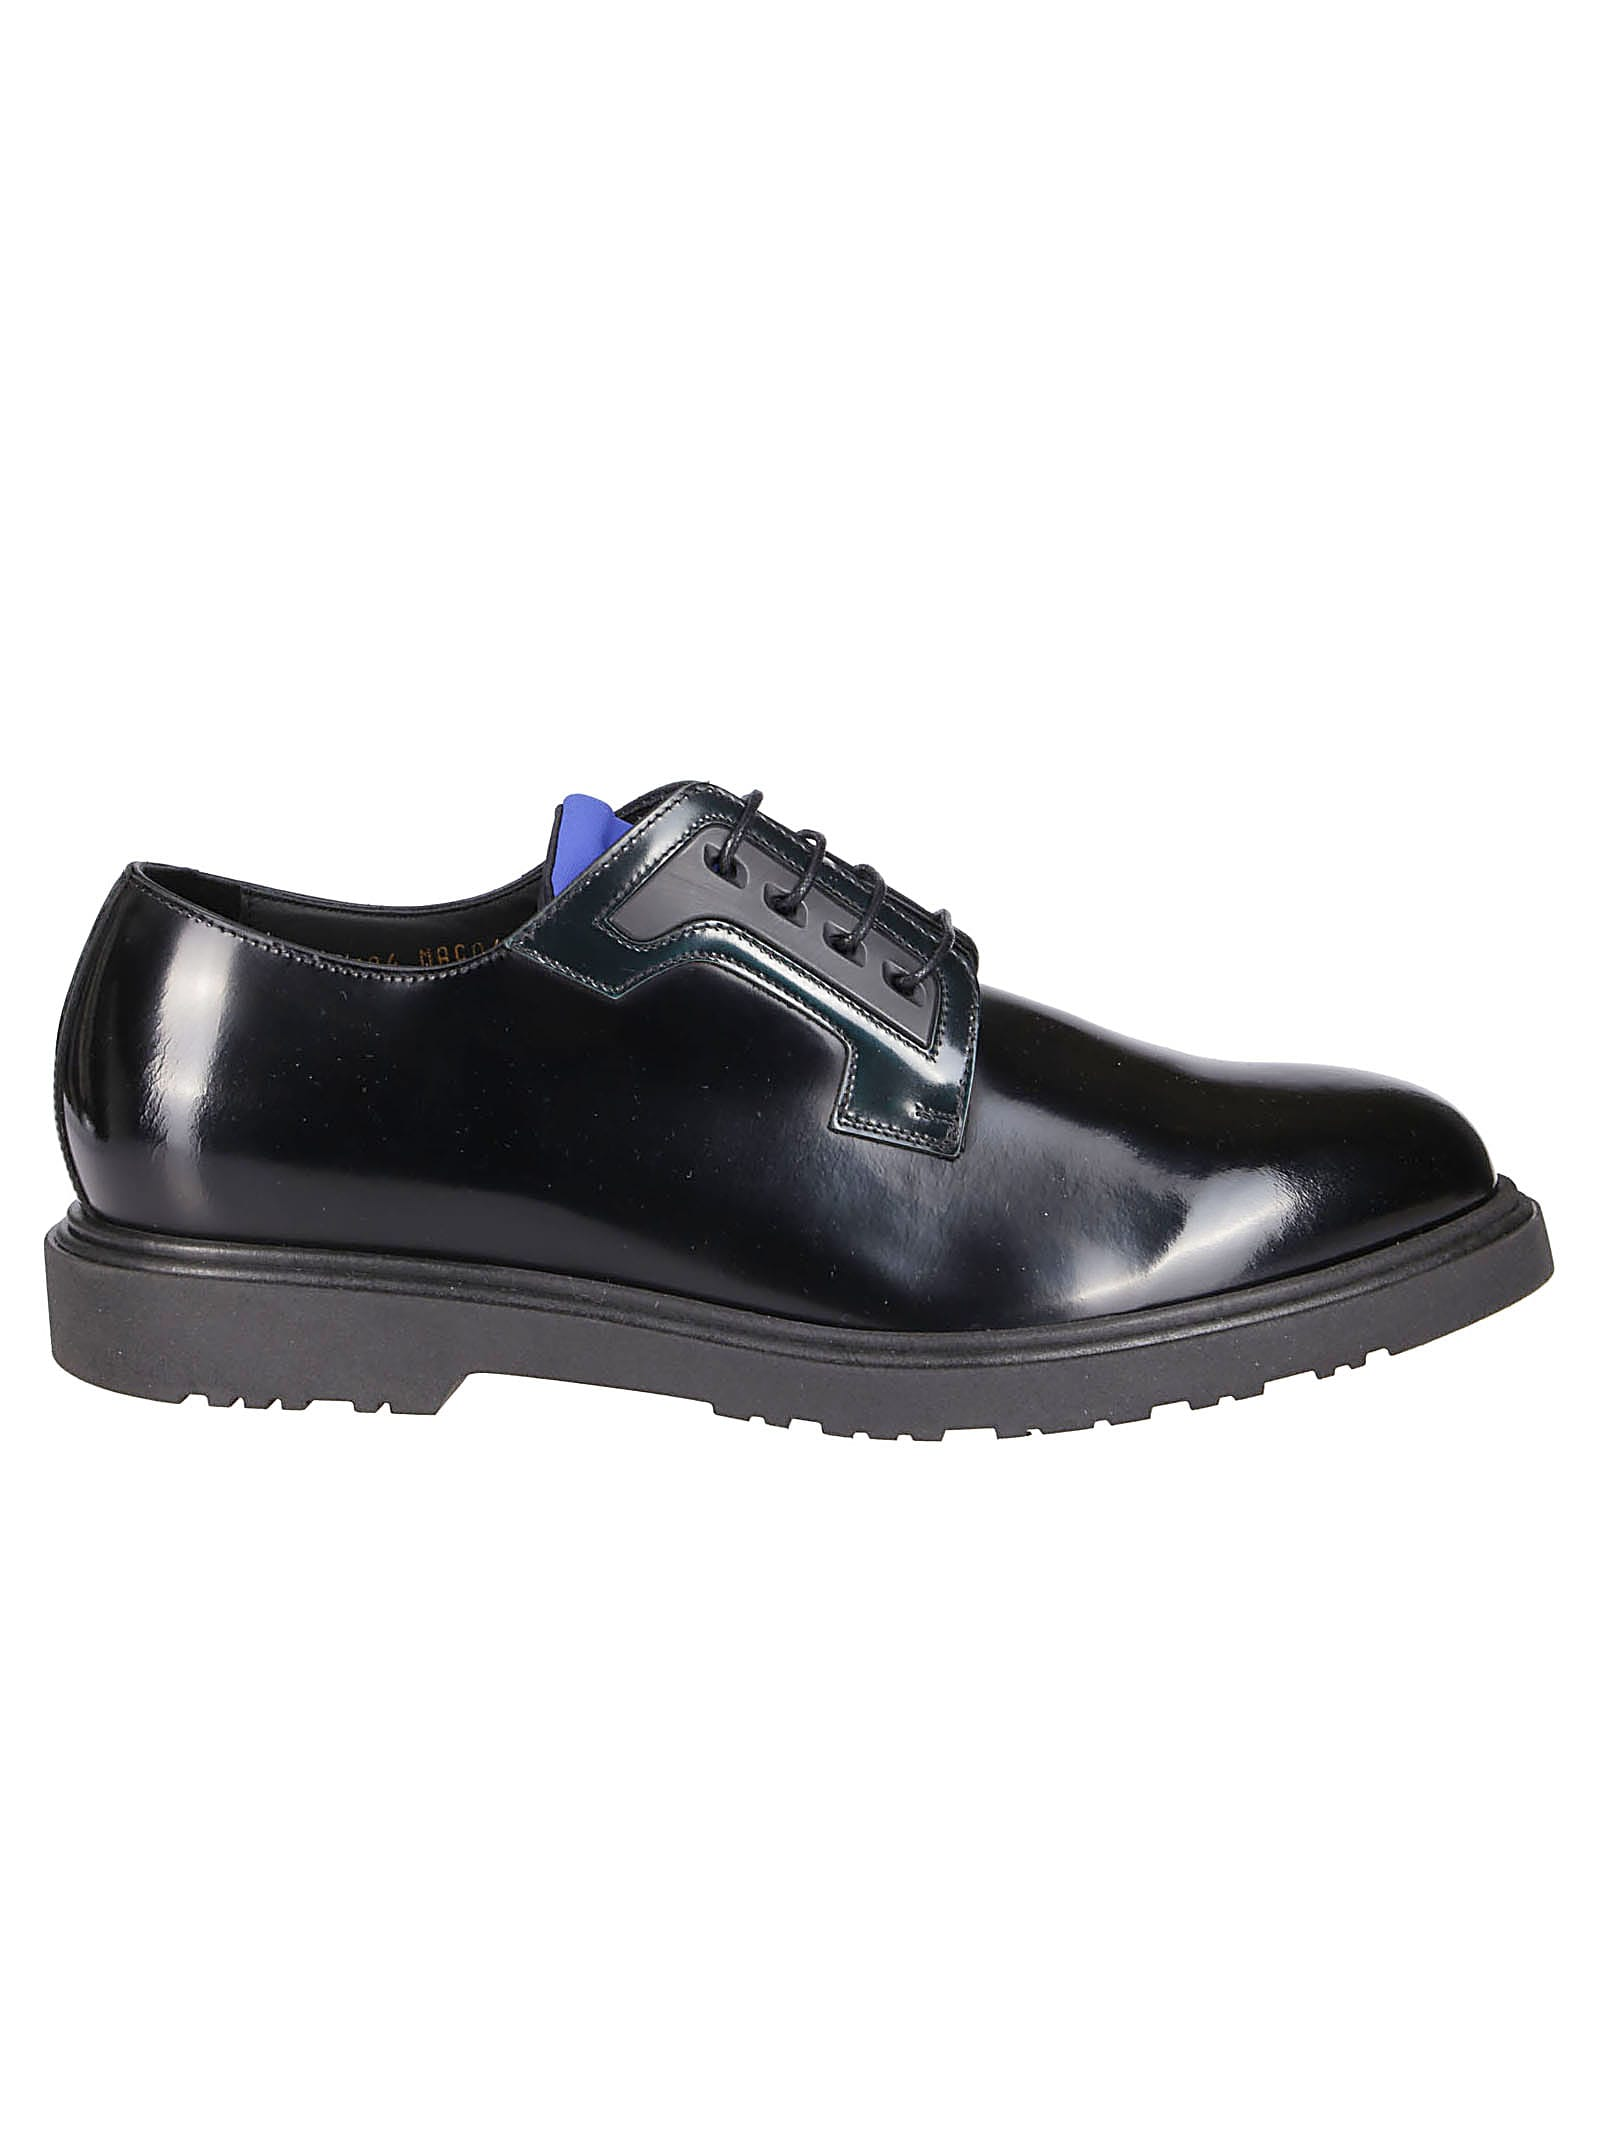 Paul Smith Laced Shoes | italist